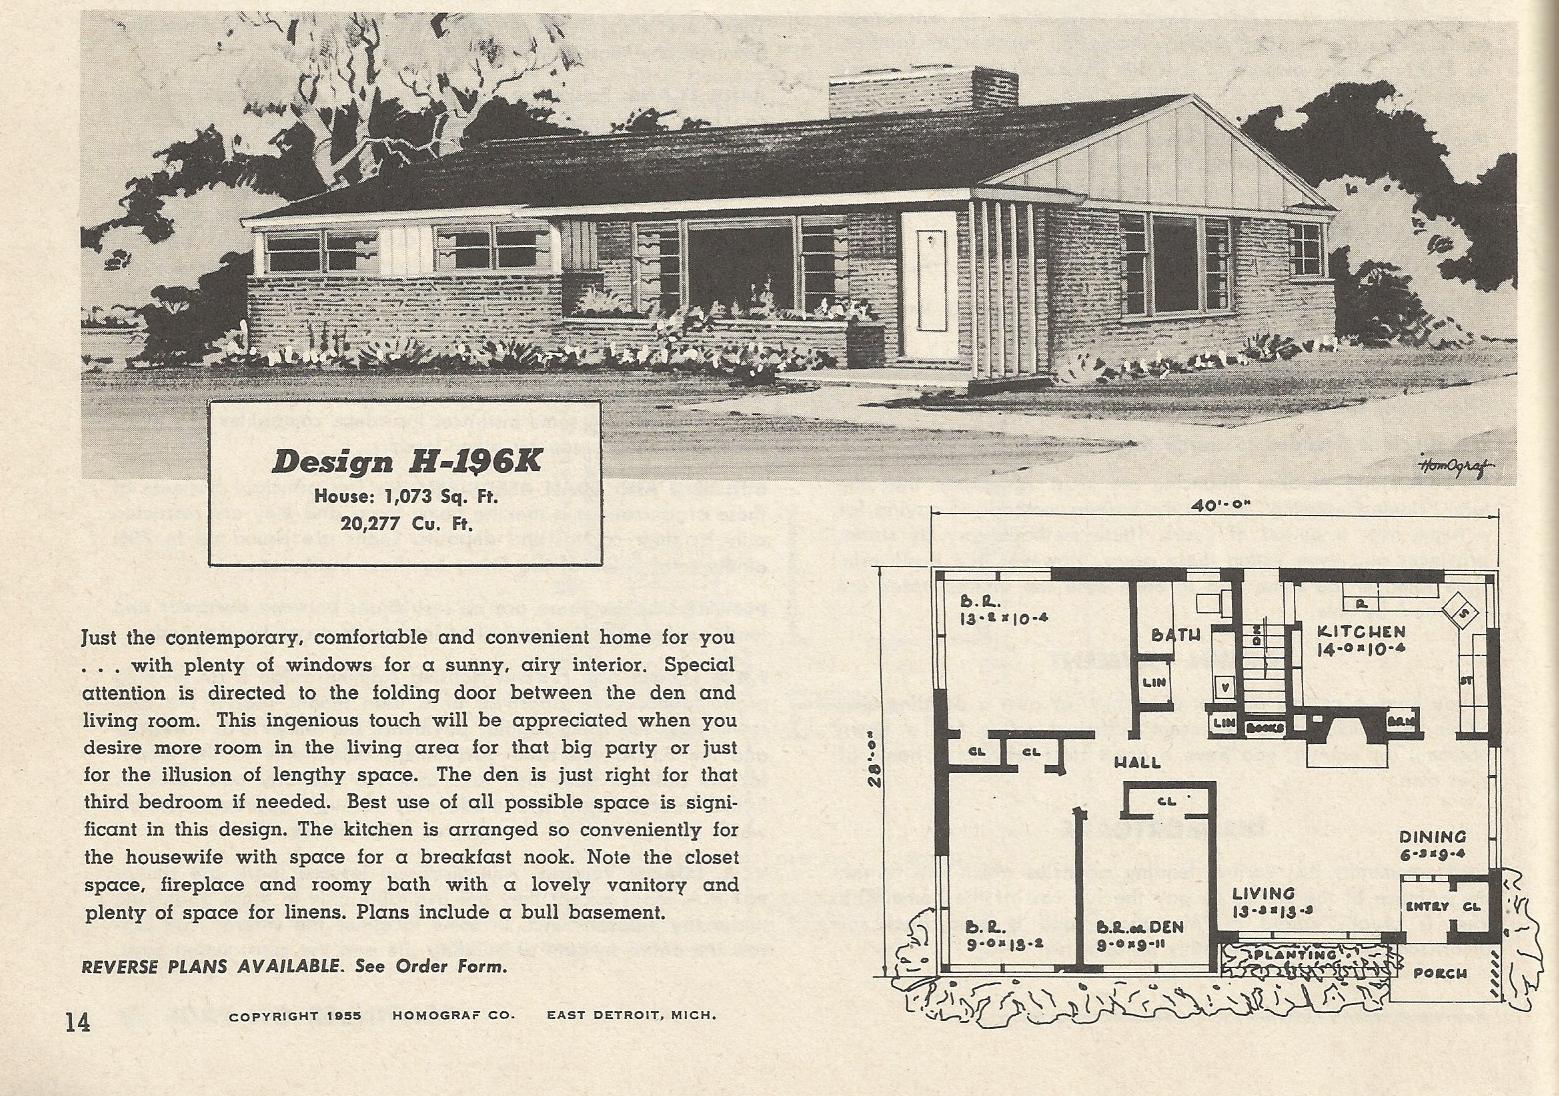 Vintage house plans 196 antique alter ego for 1950s modern house design